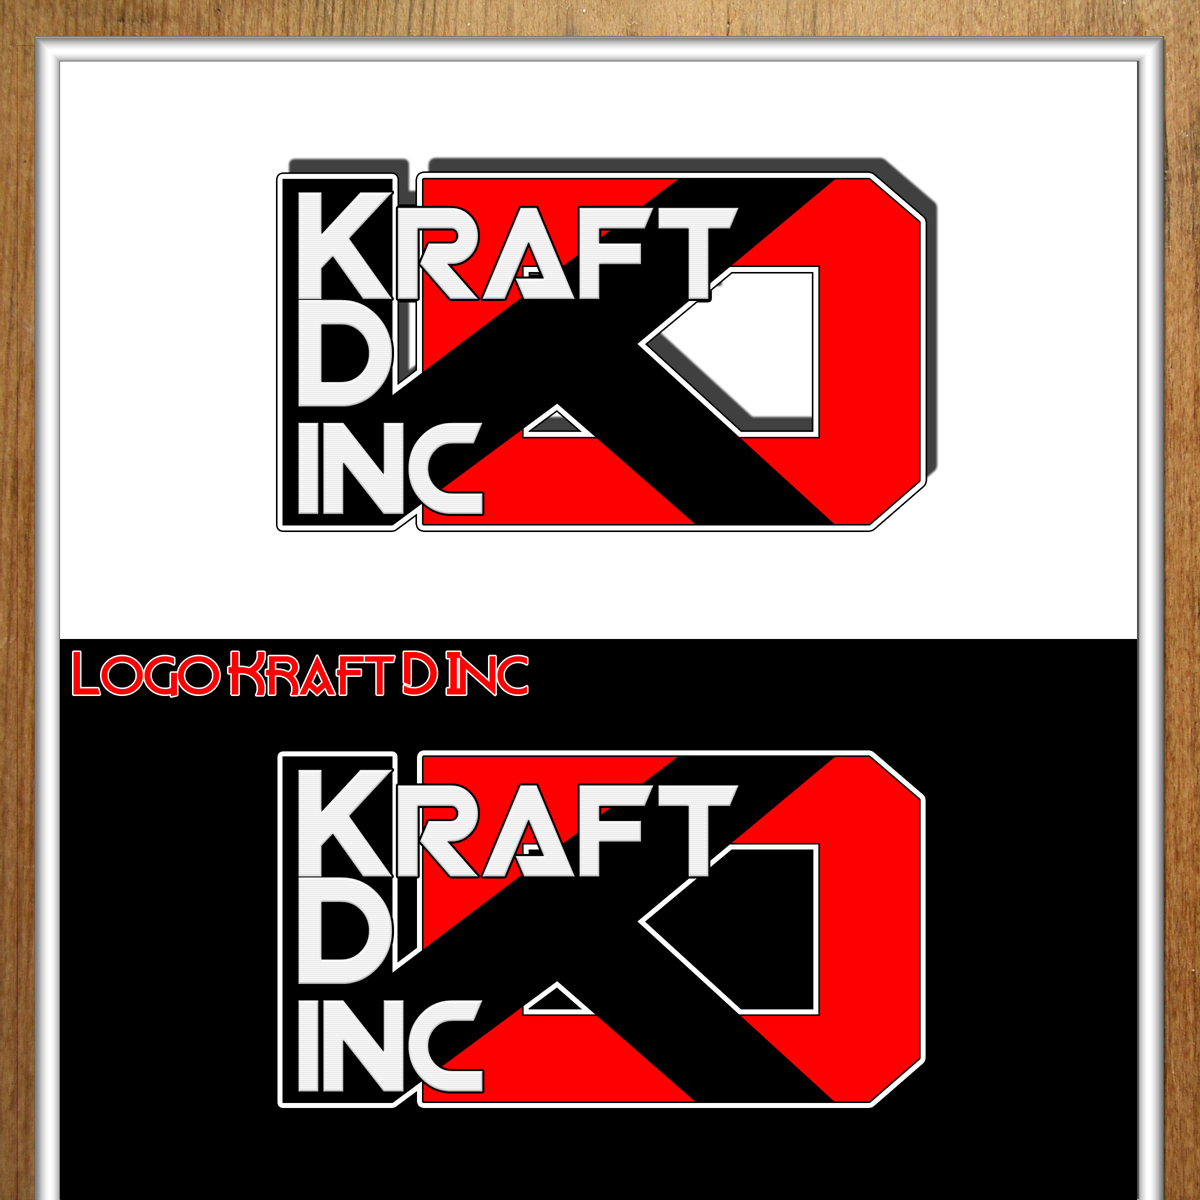 Logo Design by MITUCA ANDREI - Entry No. 244 in the Logo Design Contest Unique Logo Design Wanted for Kraft D Inc.